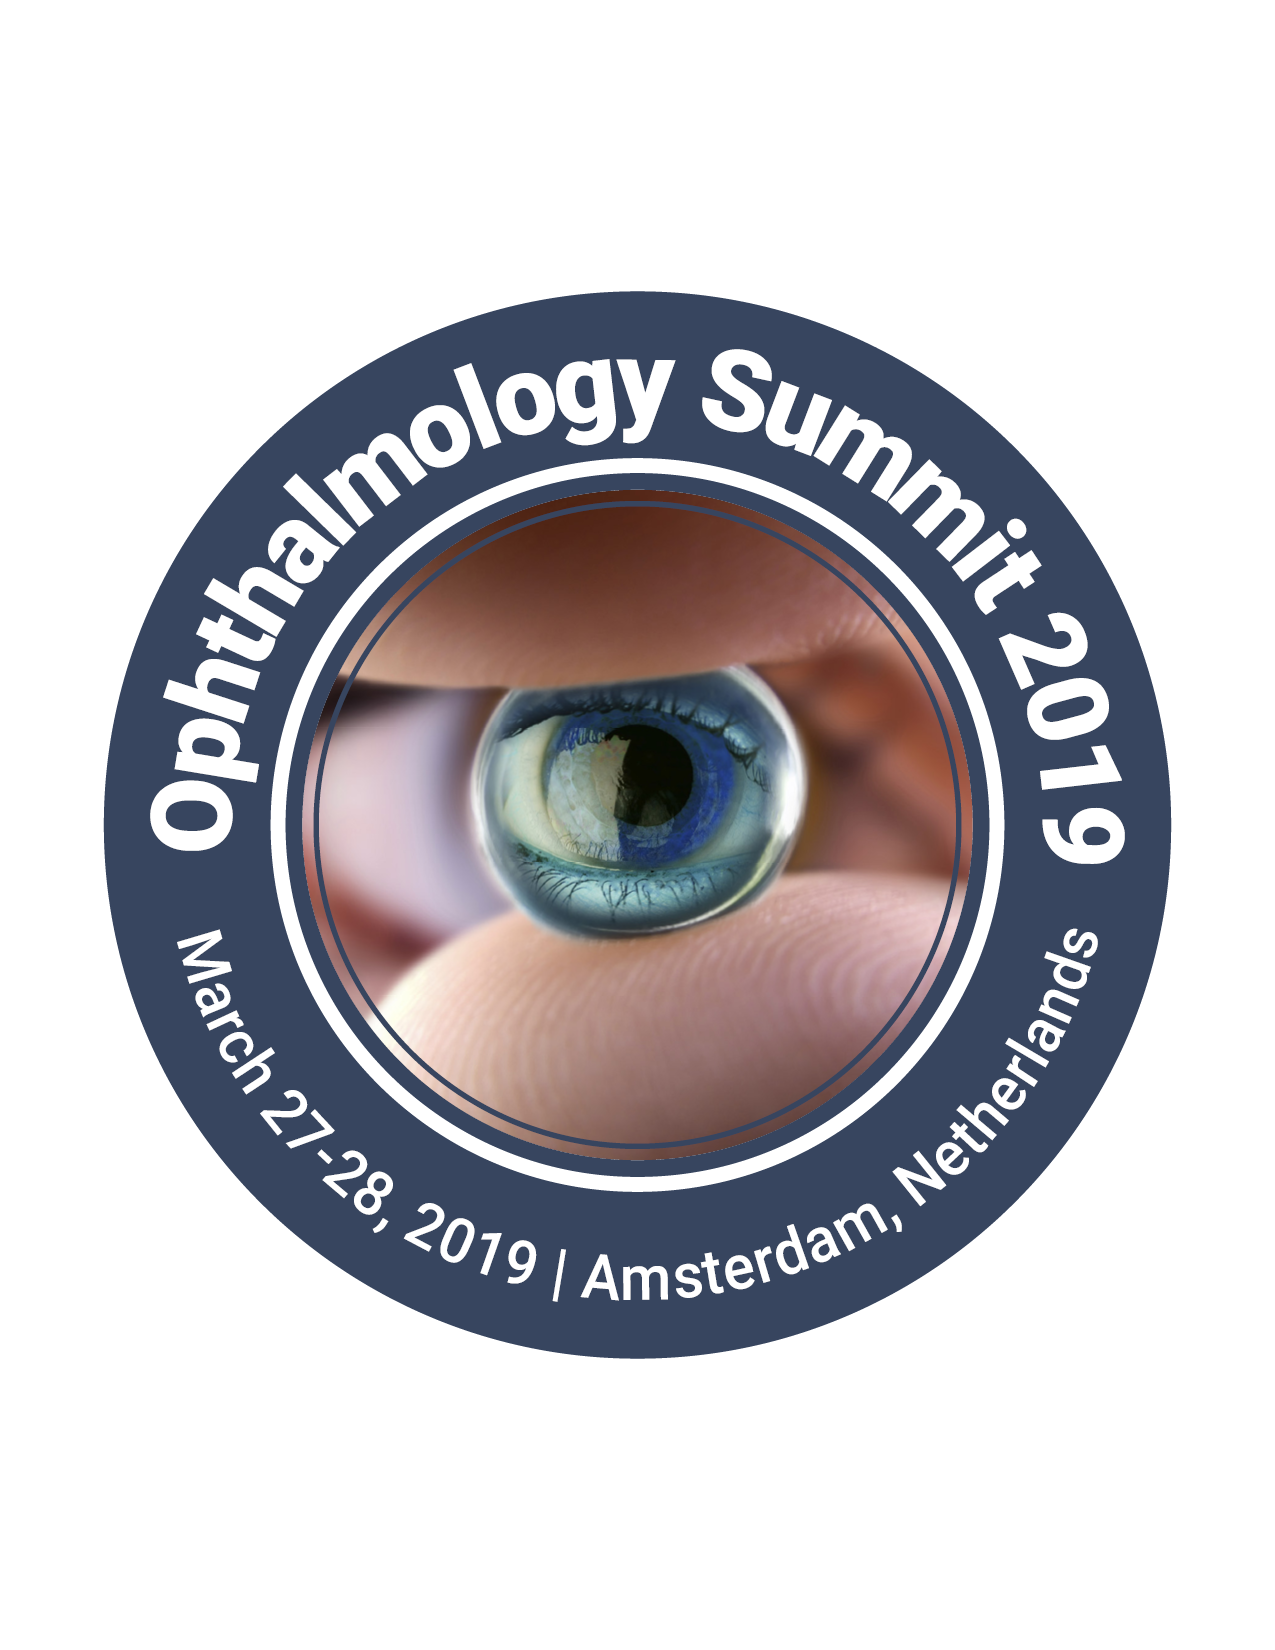 Ophthalmology Summit 2019 | Top Ophthalmology conference